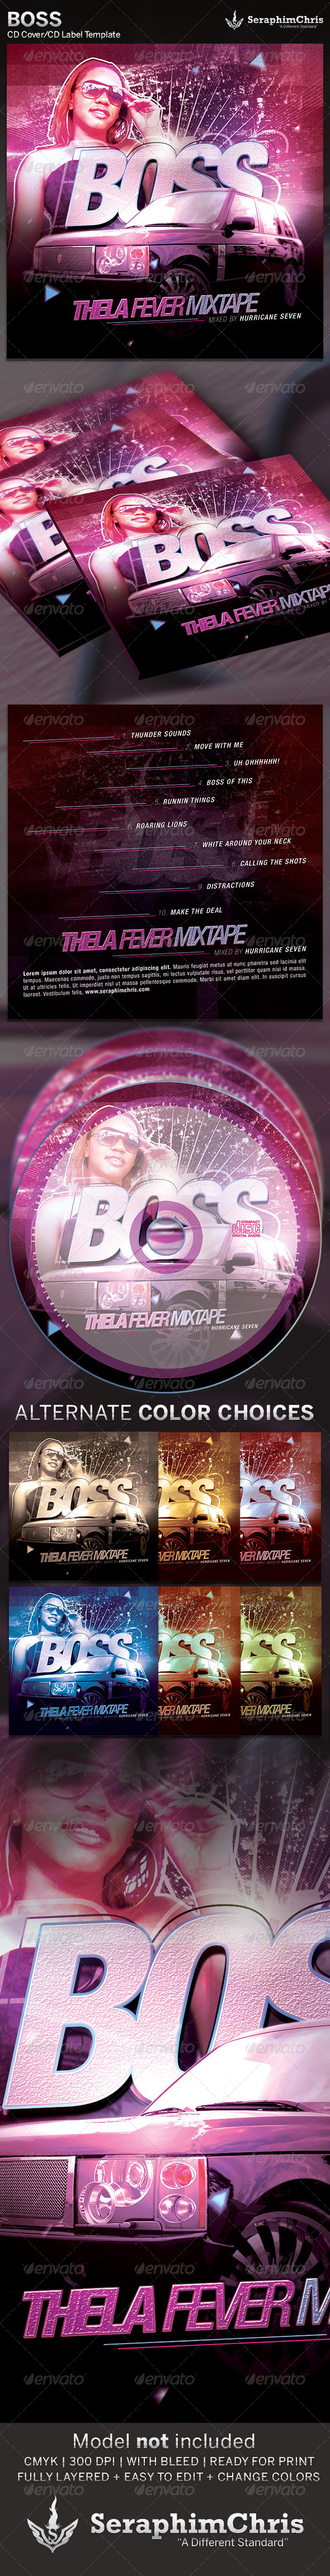 Boss: CD Cover Artwork Template - CD & DVD artwork Print Templates